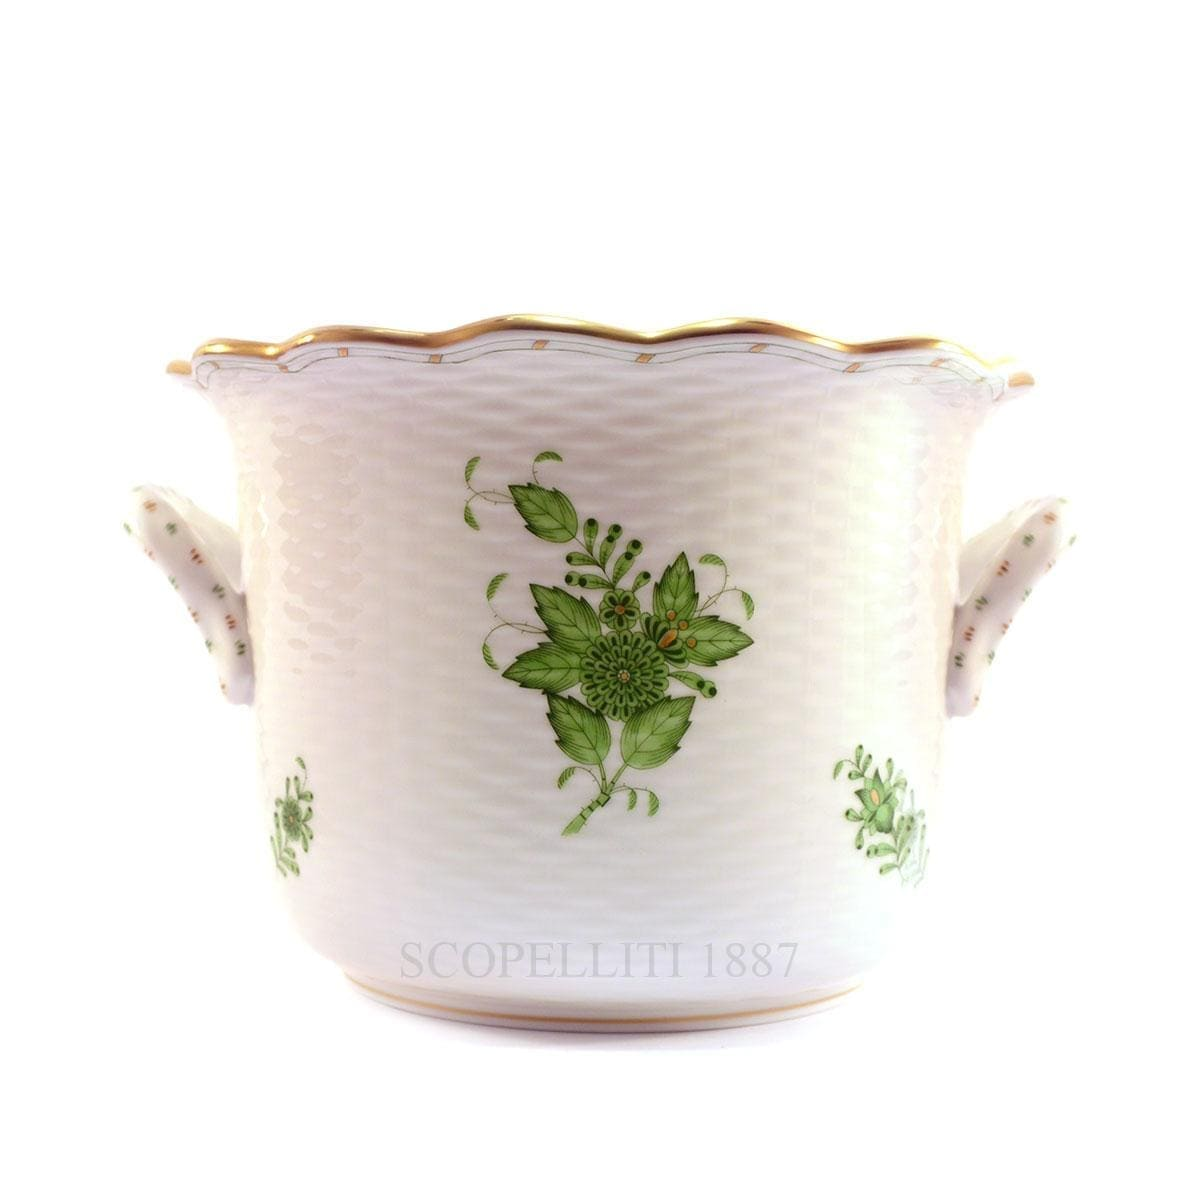 herend china porcelain handpainted apponyi cachepot green